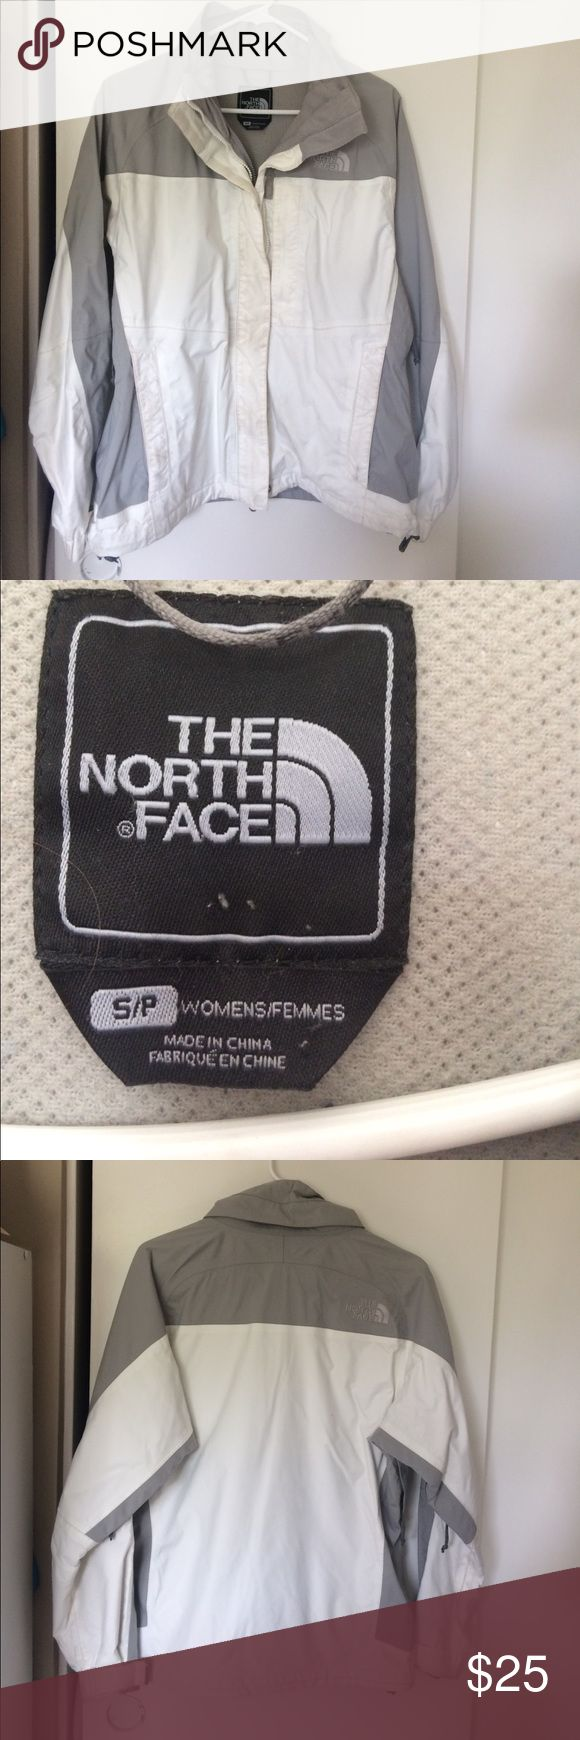 The North Face white winter coat. Size S Hard shell winter coat in white/gray. Two Full zippers. No hood. Slightly worn, easy to clean. Side vents for skiing or hiking. Size Small. The North Face Jackets & Coats